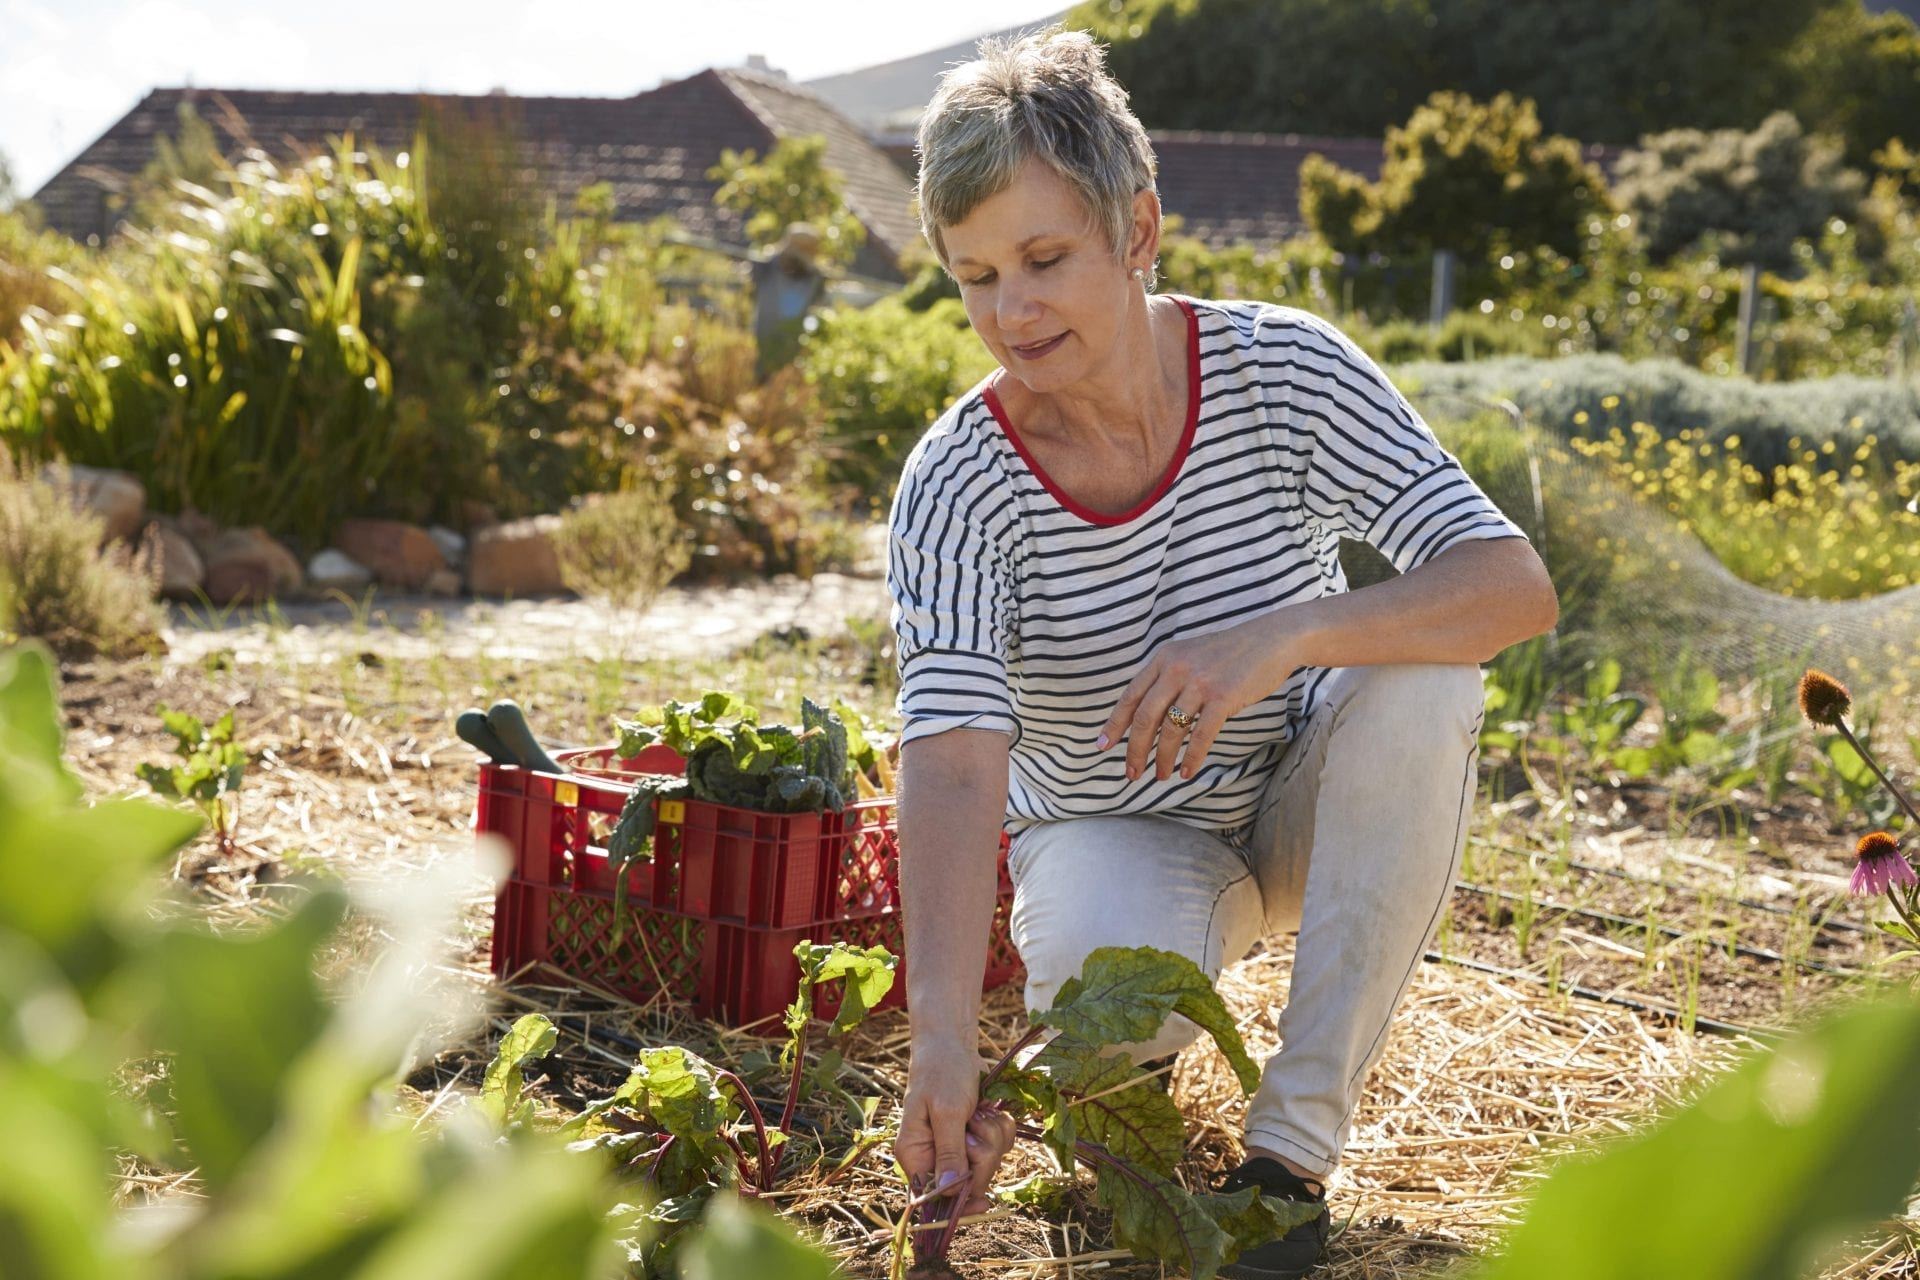 mature-woman-harvesting-beetroot-on-community-PWLYNTZ-min